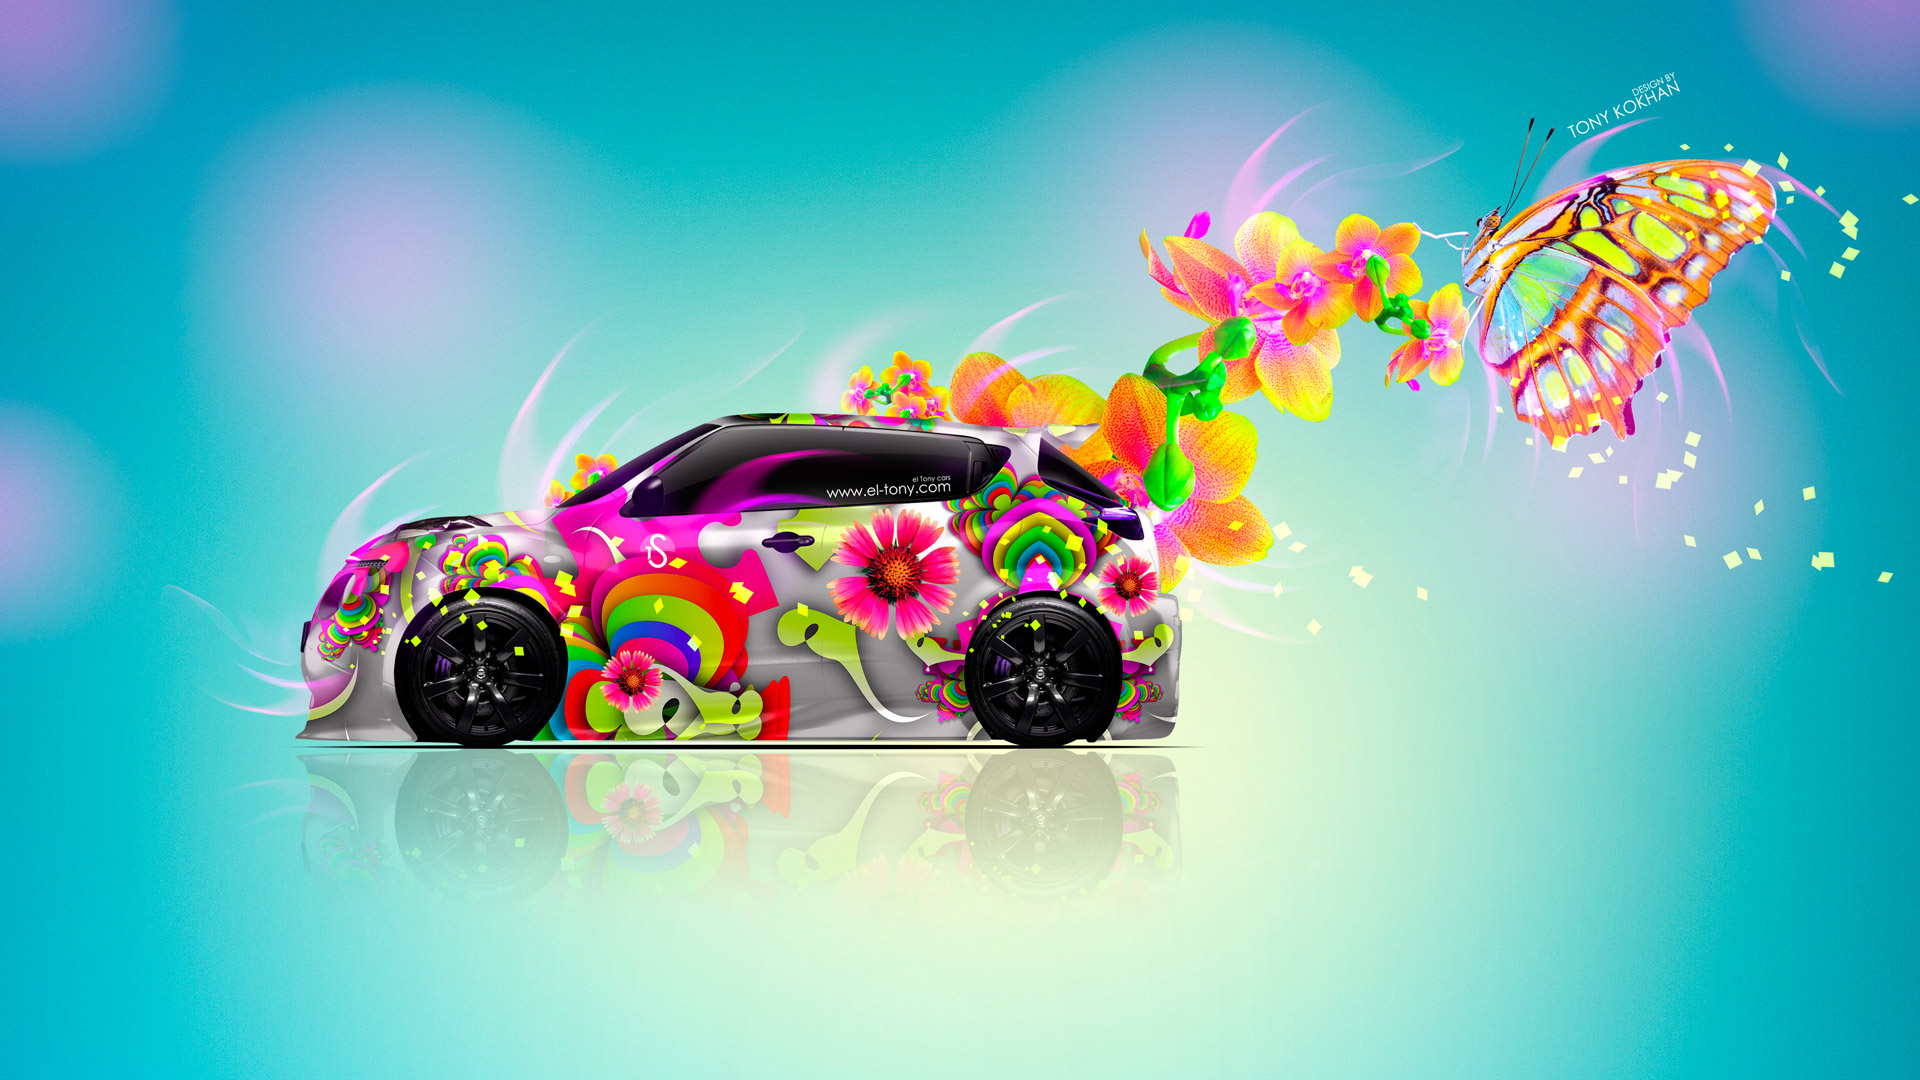 Exceptionnel Nissan Juke R Side Fantasy Flowers Butterfly Car